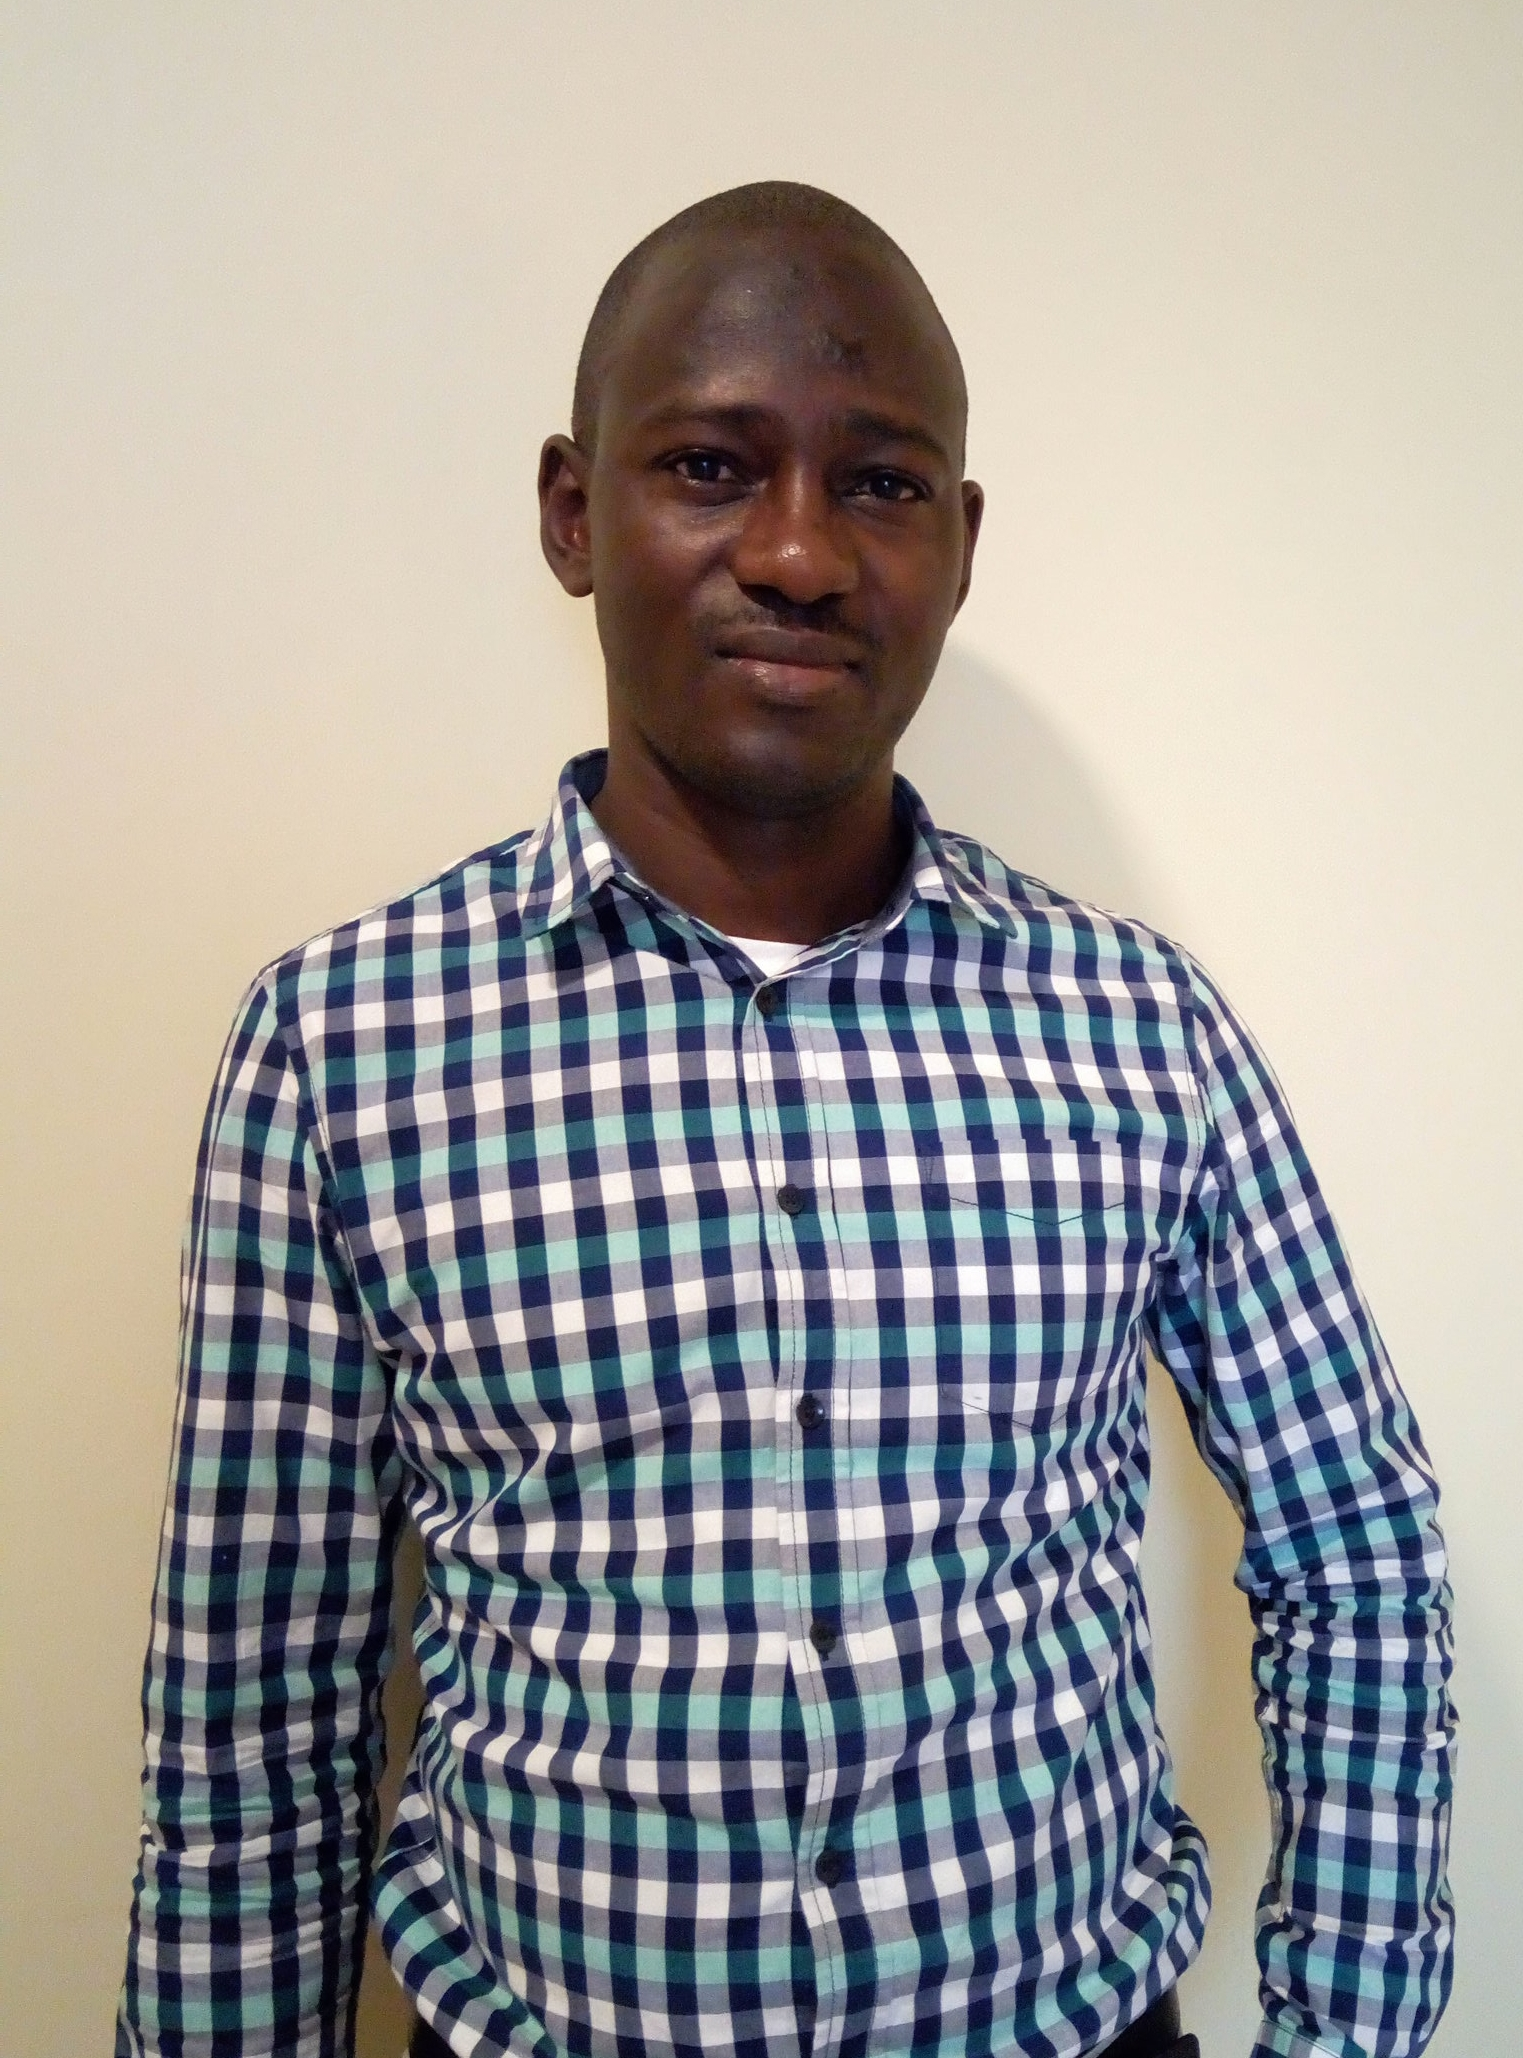 Job Kiija Simon - Associate Support, Research and StrategyJob is Associate Support, Research and Strategy for CivSource Africa responsible for the firm's strategic focus. He has over ten years' experience in civil society and development work. He is a social researcher specializing in political governance, democracy, human rights, political and social accountability. He is a civic activist, a social entrepreneur and youth leader. He is a founding Associate Director of Innovations for Democratic Engagement, a young people's pro-democracy ideas incubation hub that uses innovative technology to facilitate young people's participation in governance. Job headed the Democracy and Rule of Law Program at the Great Lakes Institute for Strategic Studies (GLISS); was Uganda National NGO Forum's Focal Person for the Uganda Governance Monitoring Platform, and Program Specialist, Research, Policy and Advocacy at the Community Health Alliance Uganda. He has coordinated several research processes that have led to the generation of governance audit reports in Uganda. Job a Bachelor of Arts in International Business from Makerere University, a Post Graduate Certificate in Research Methods and Writing Skills, and a Mini IPDET certificate in Monitoring and Evaluation from Makerere Institute for Social Research.